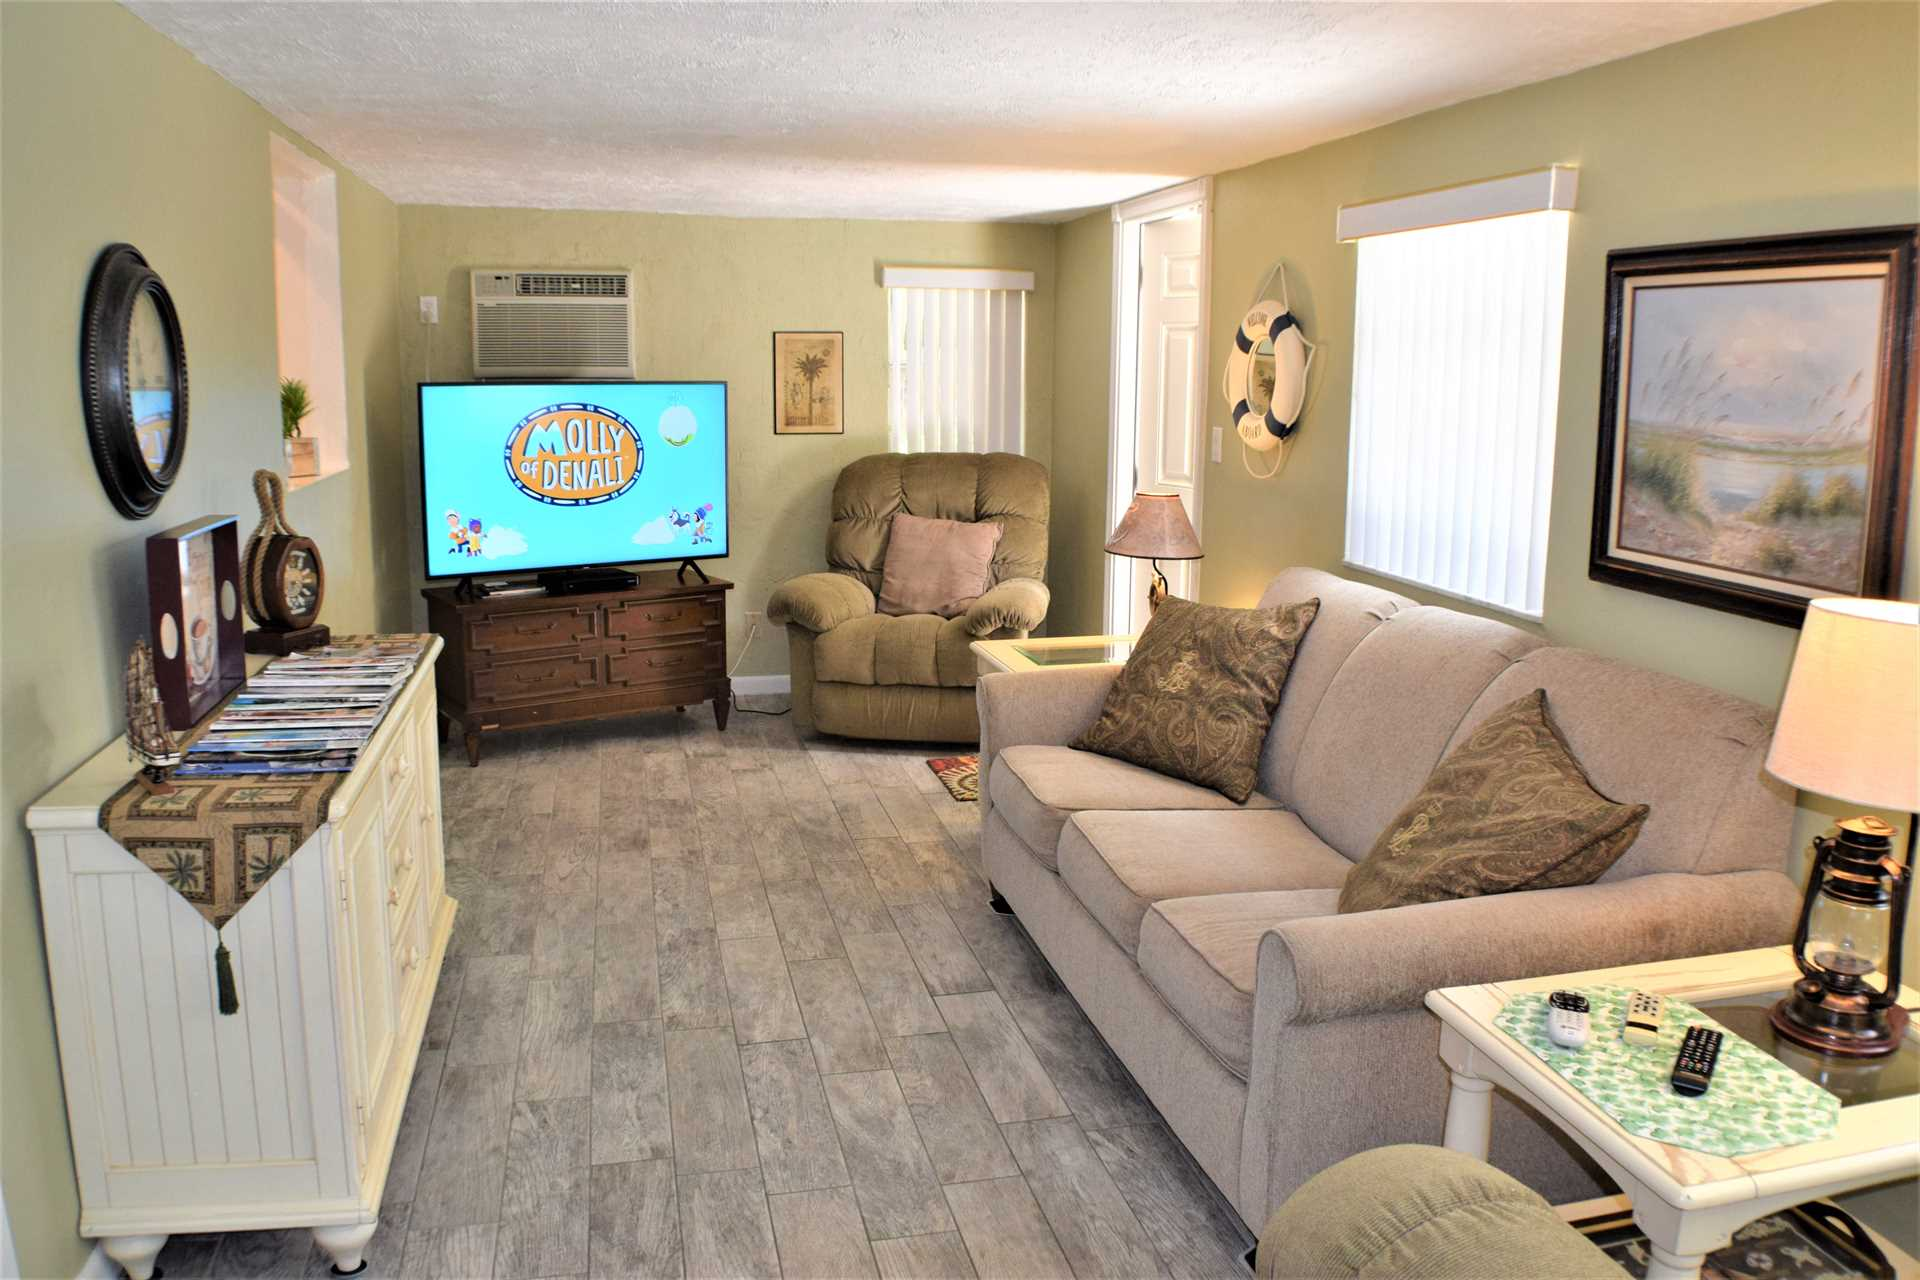 Florida room features HDTV and convertible sofabed.